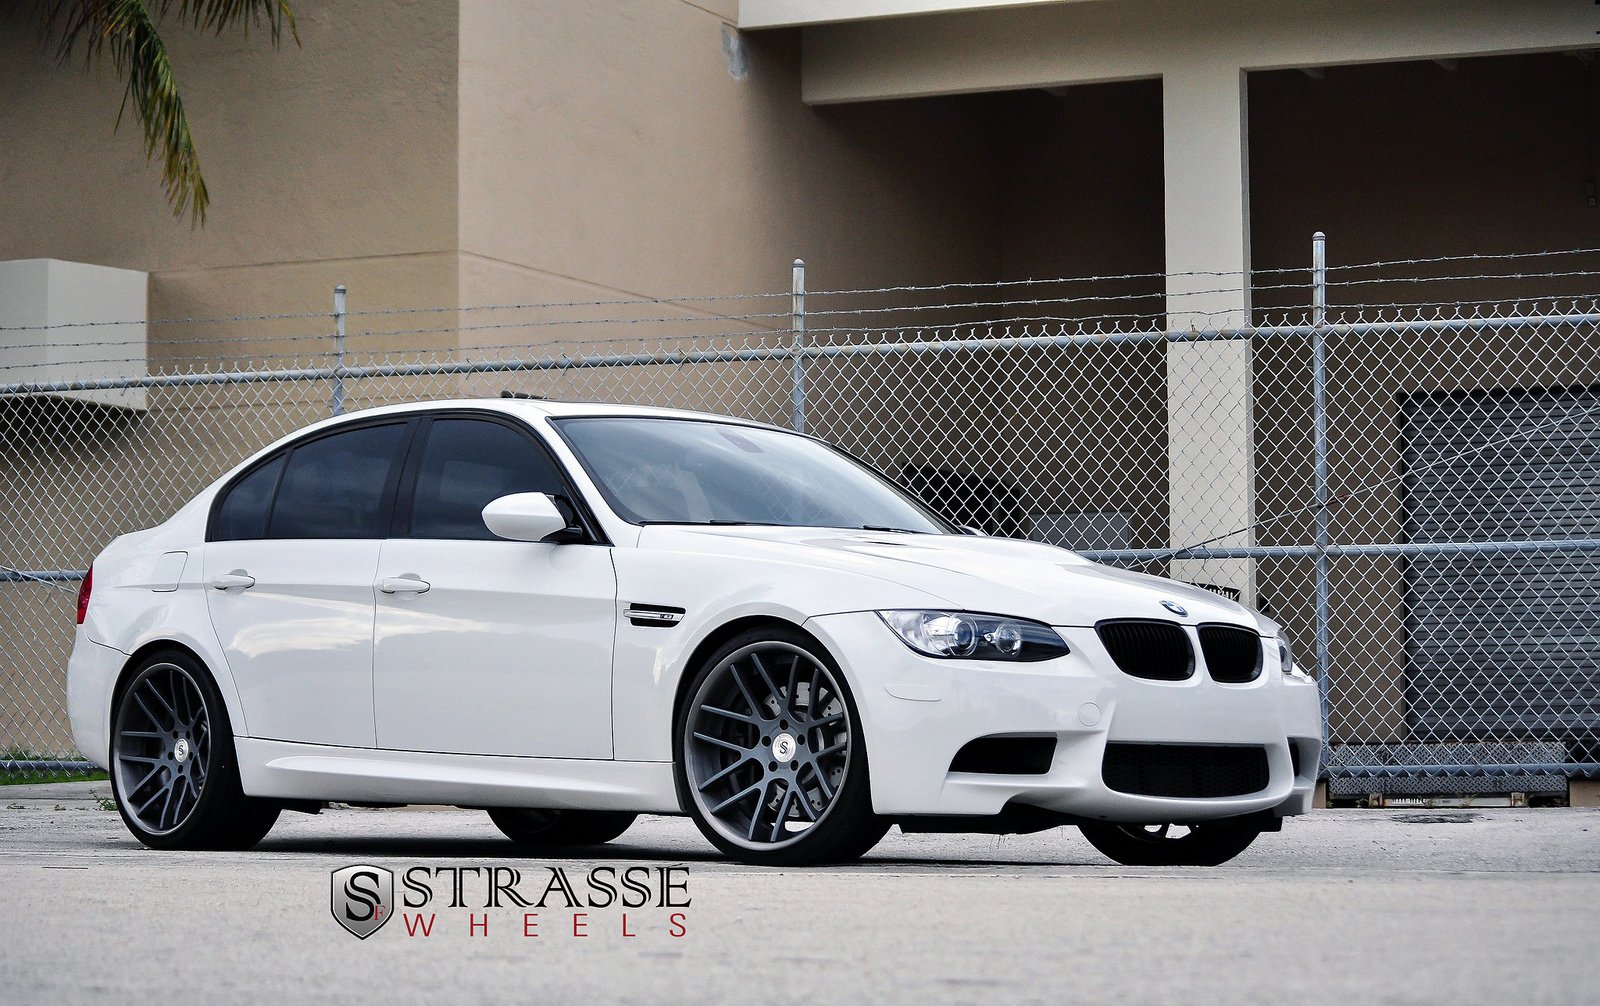 bmw e90 strasse tuning wheels m3 white wallpaper 1600x1006 391206 wallpaperup. Black Bedroom Furniture Sets. Home Design Ideas